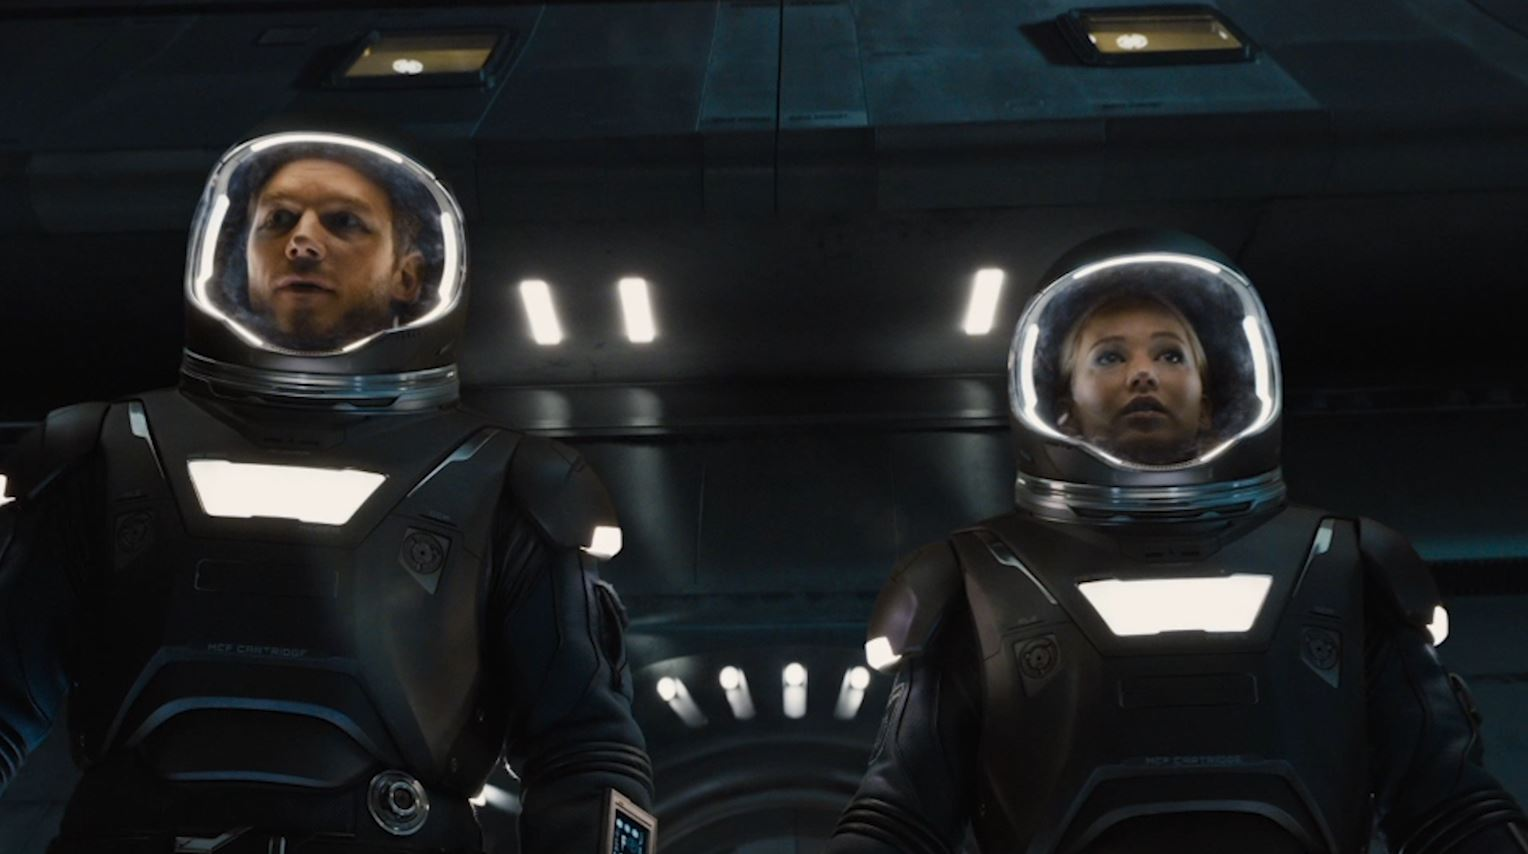 Image result for passengers movie space scene